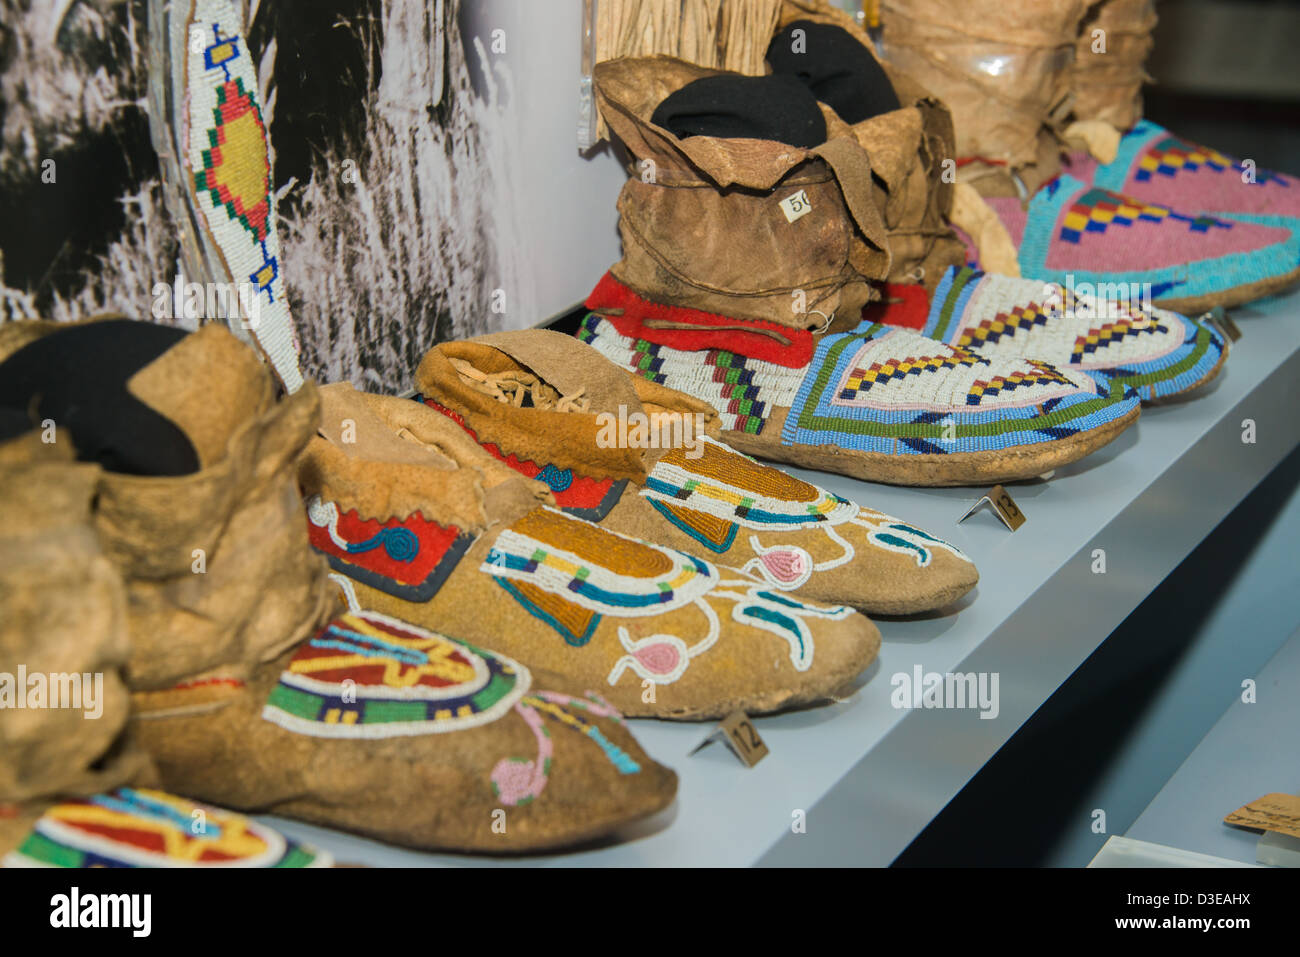 Native Indian footwear on display at the Royal Ontario Museum - Stock Image